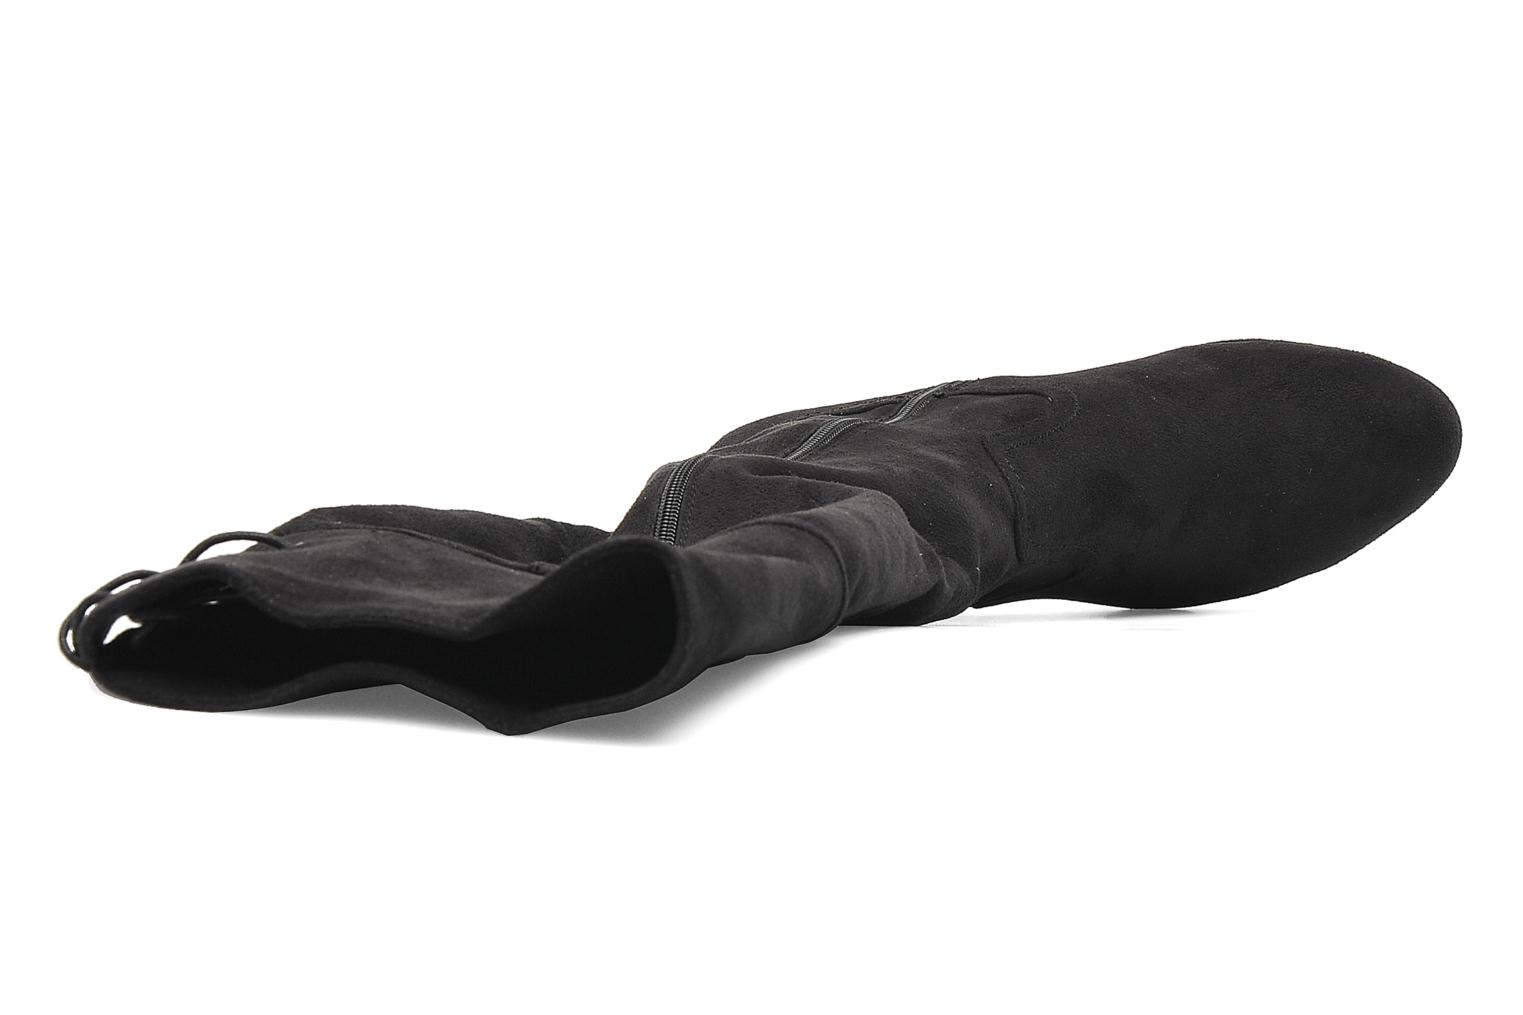 Kristolyn stretch Noir